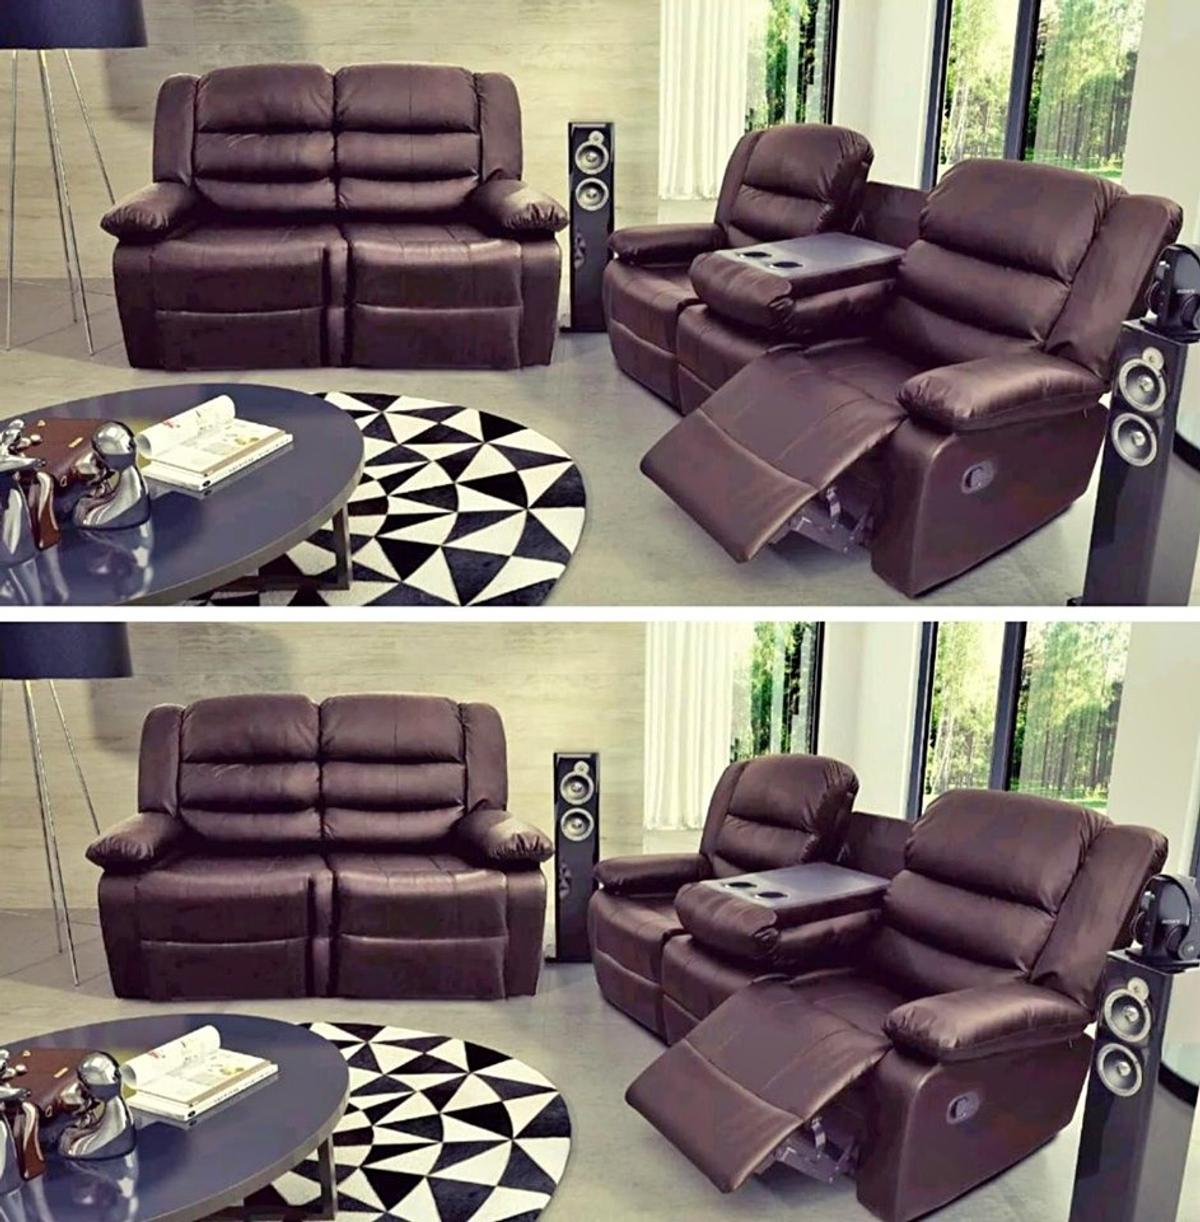 Surprising Brand New Brown 3 2 Recliner Leather Sofa Pabps2019 Chair Design Images Pabps2019Com